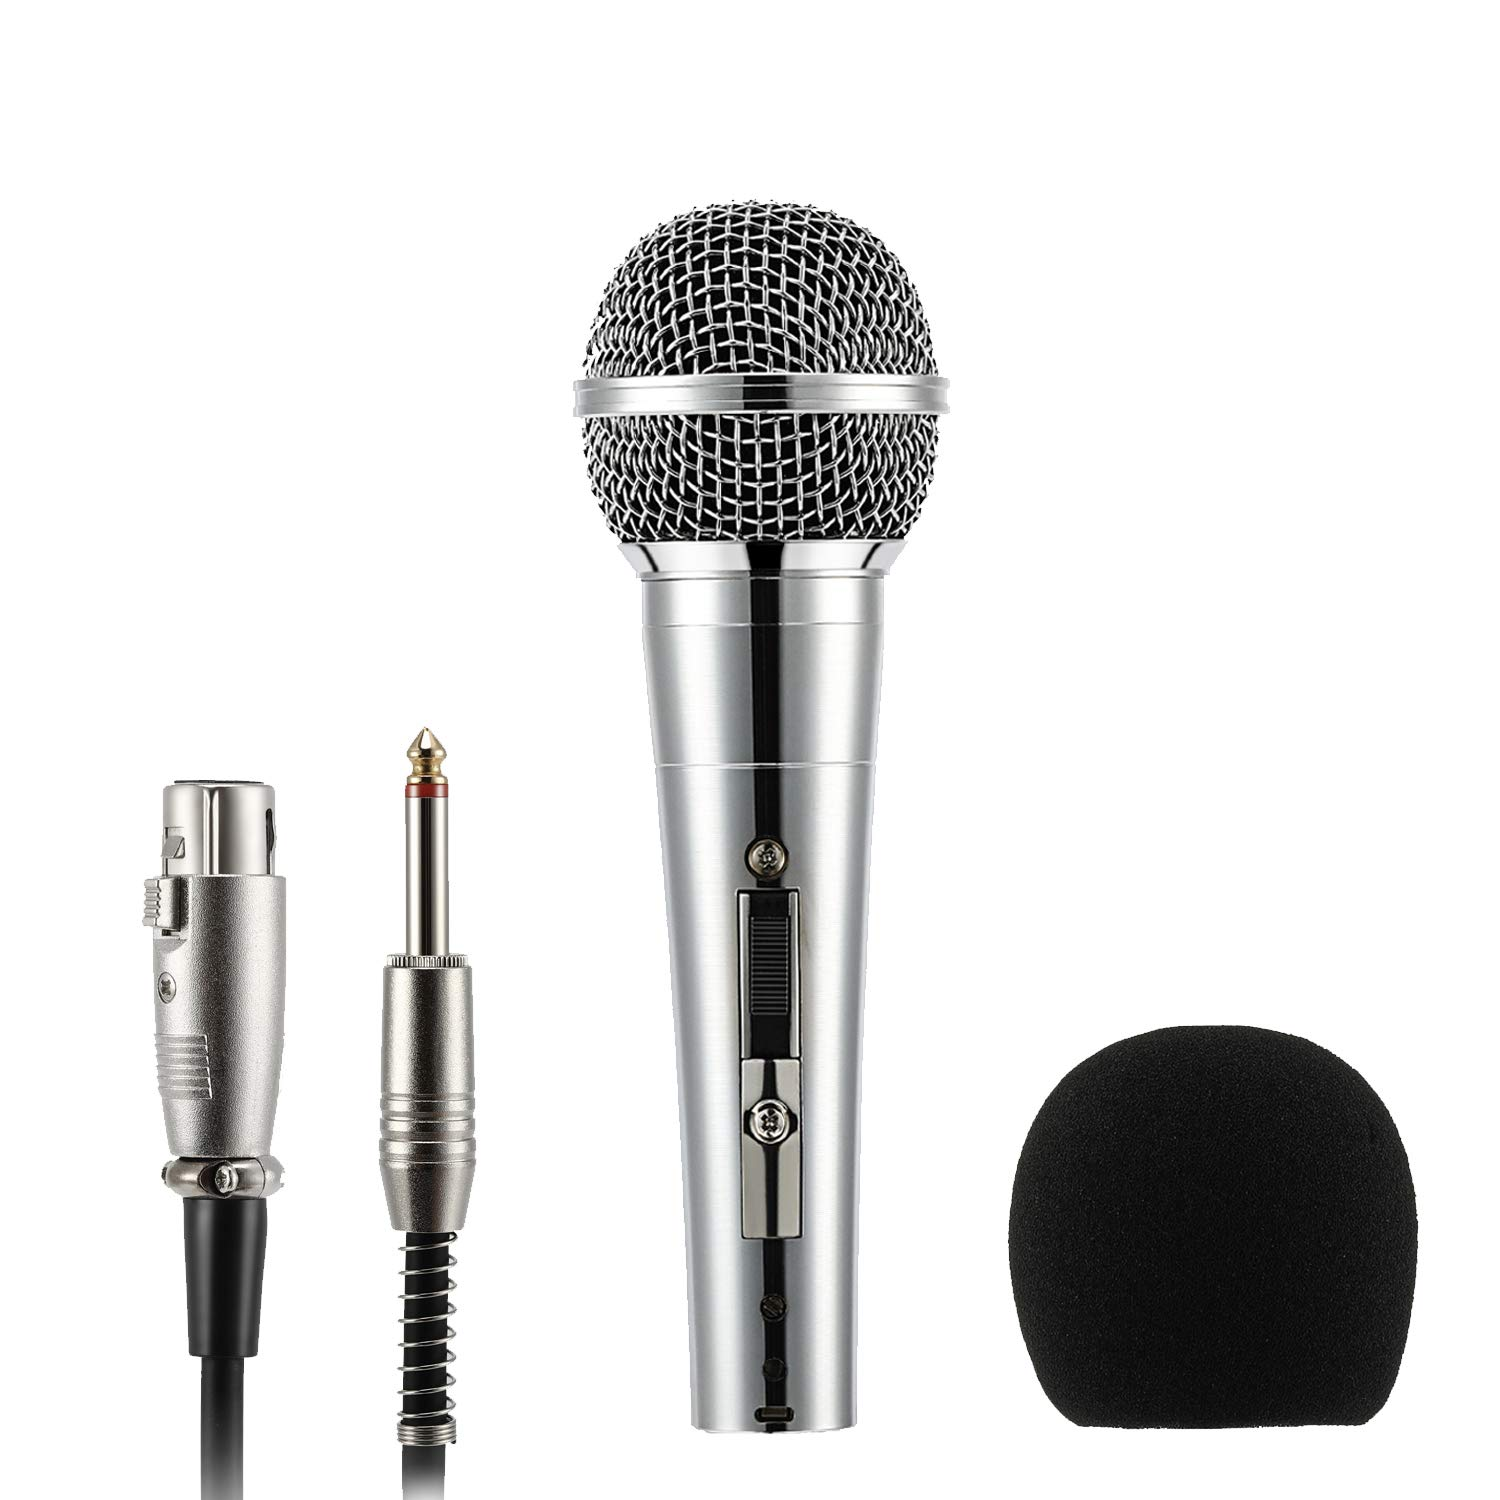 Moukey Dynamic Microphone, MWm-3 Multipurpose Metal Wired Cardioid Handheld Mic with Switch 16.40 ft XLR Detachable Cable for Singing, Karaoke Machine, Vocal, Party, Stage by Moukey